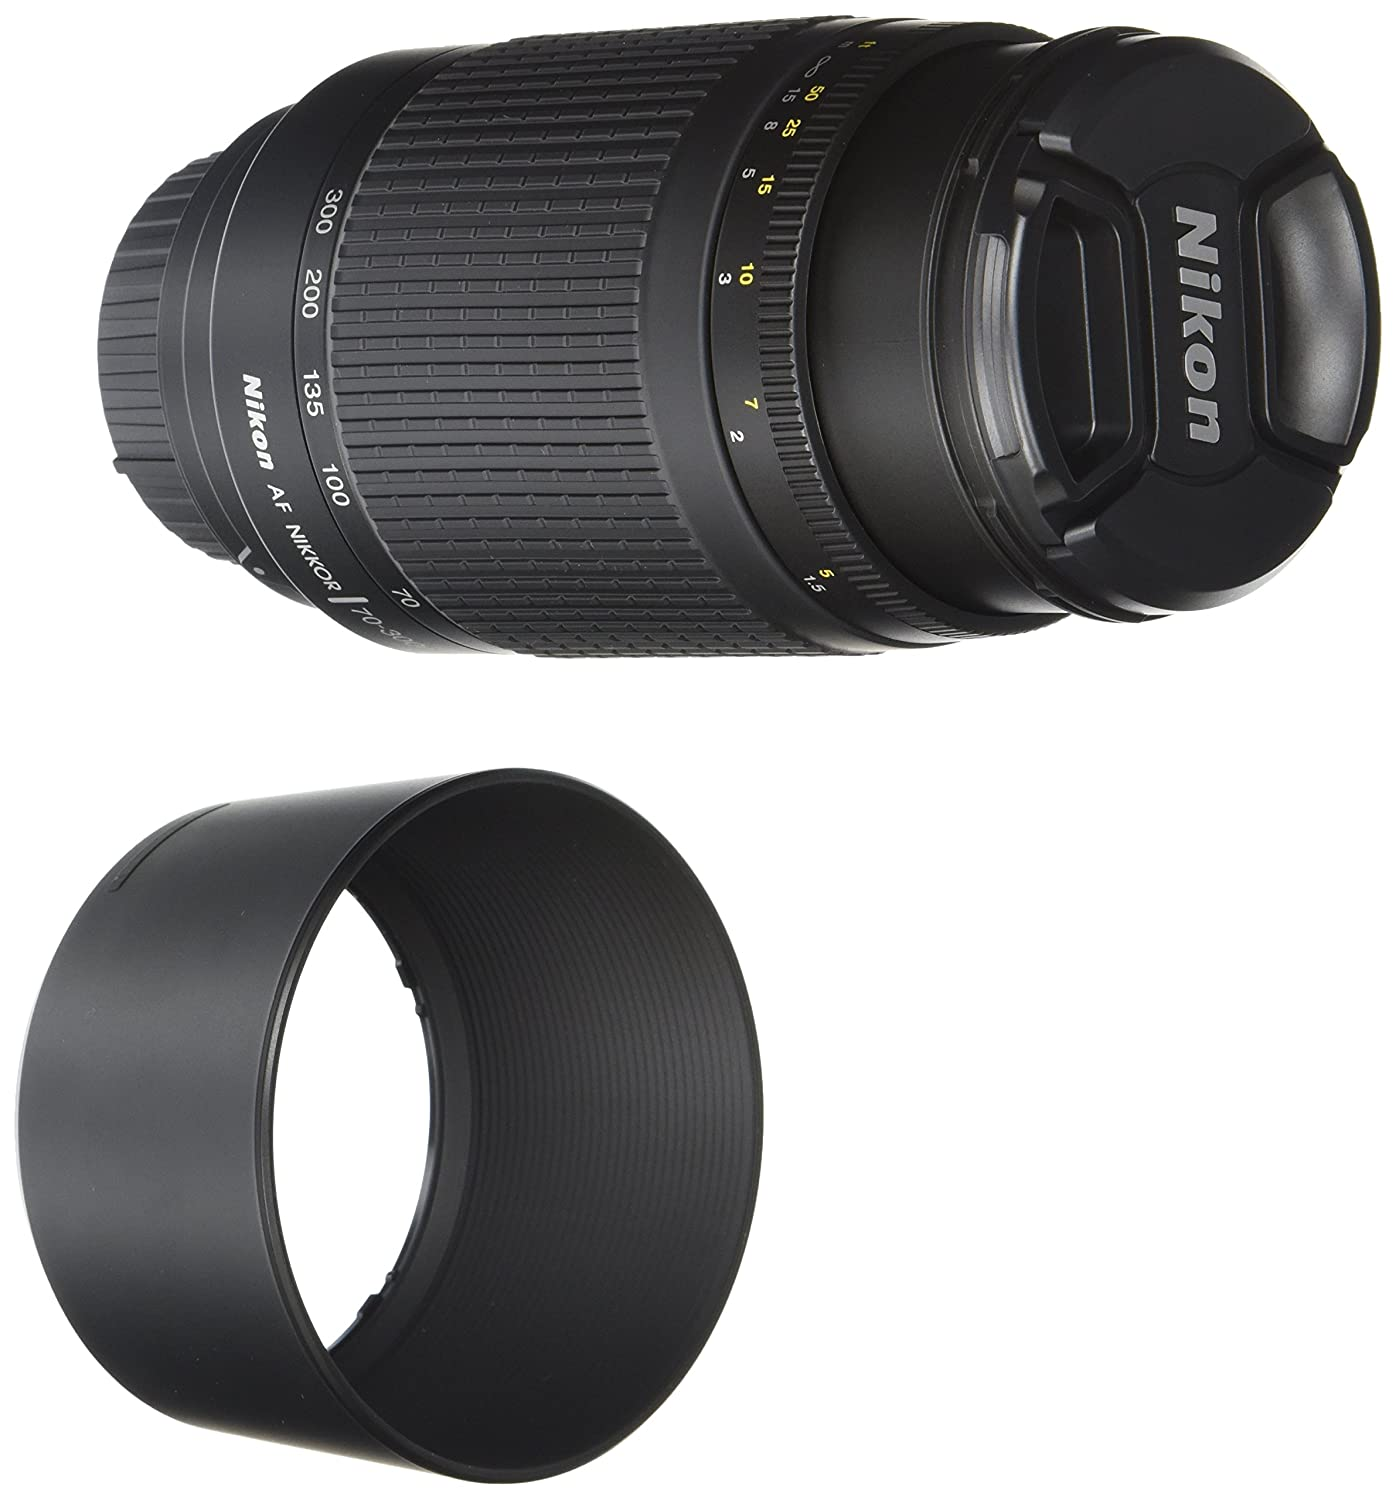 Camera Lenses For Canon Dslr Cameras lenses buy camera online at low prices in india amazon nikon af 70 300mm f4 5 6g telephoto zoom lens for dslr camera